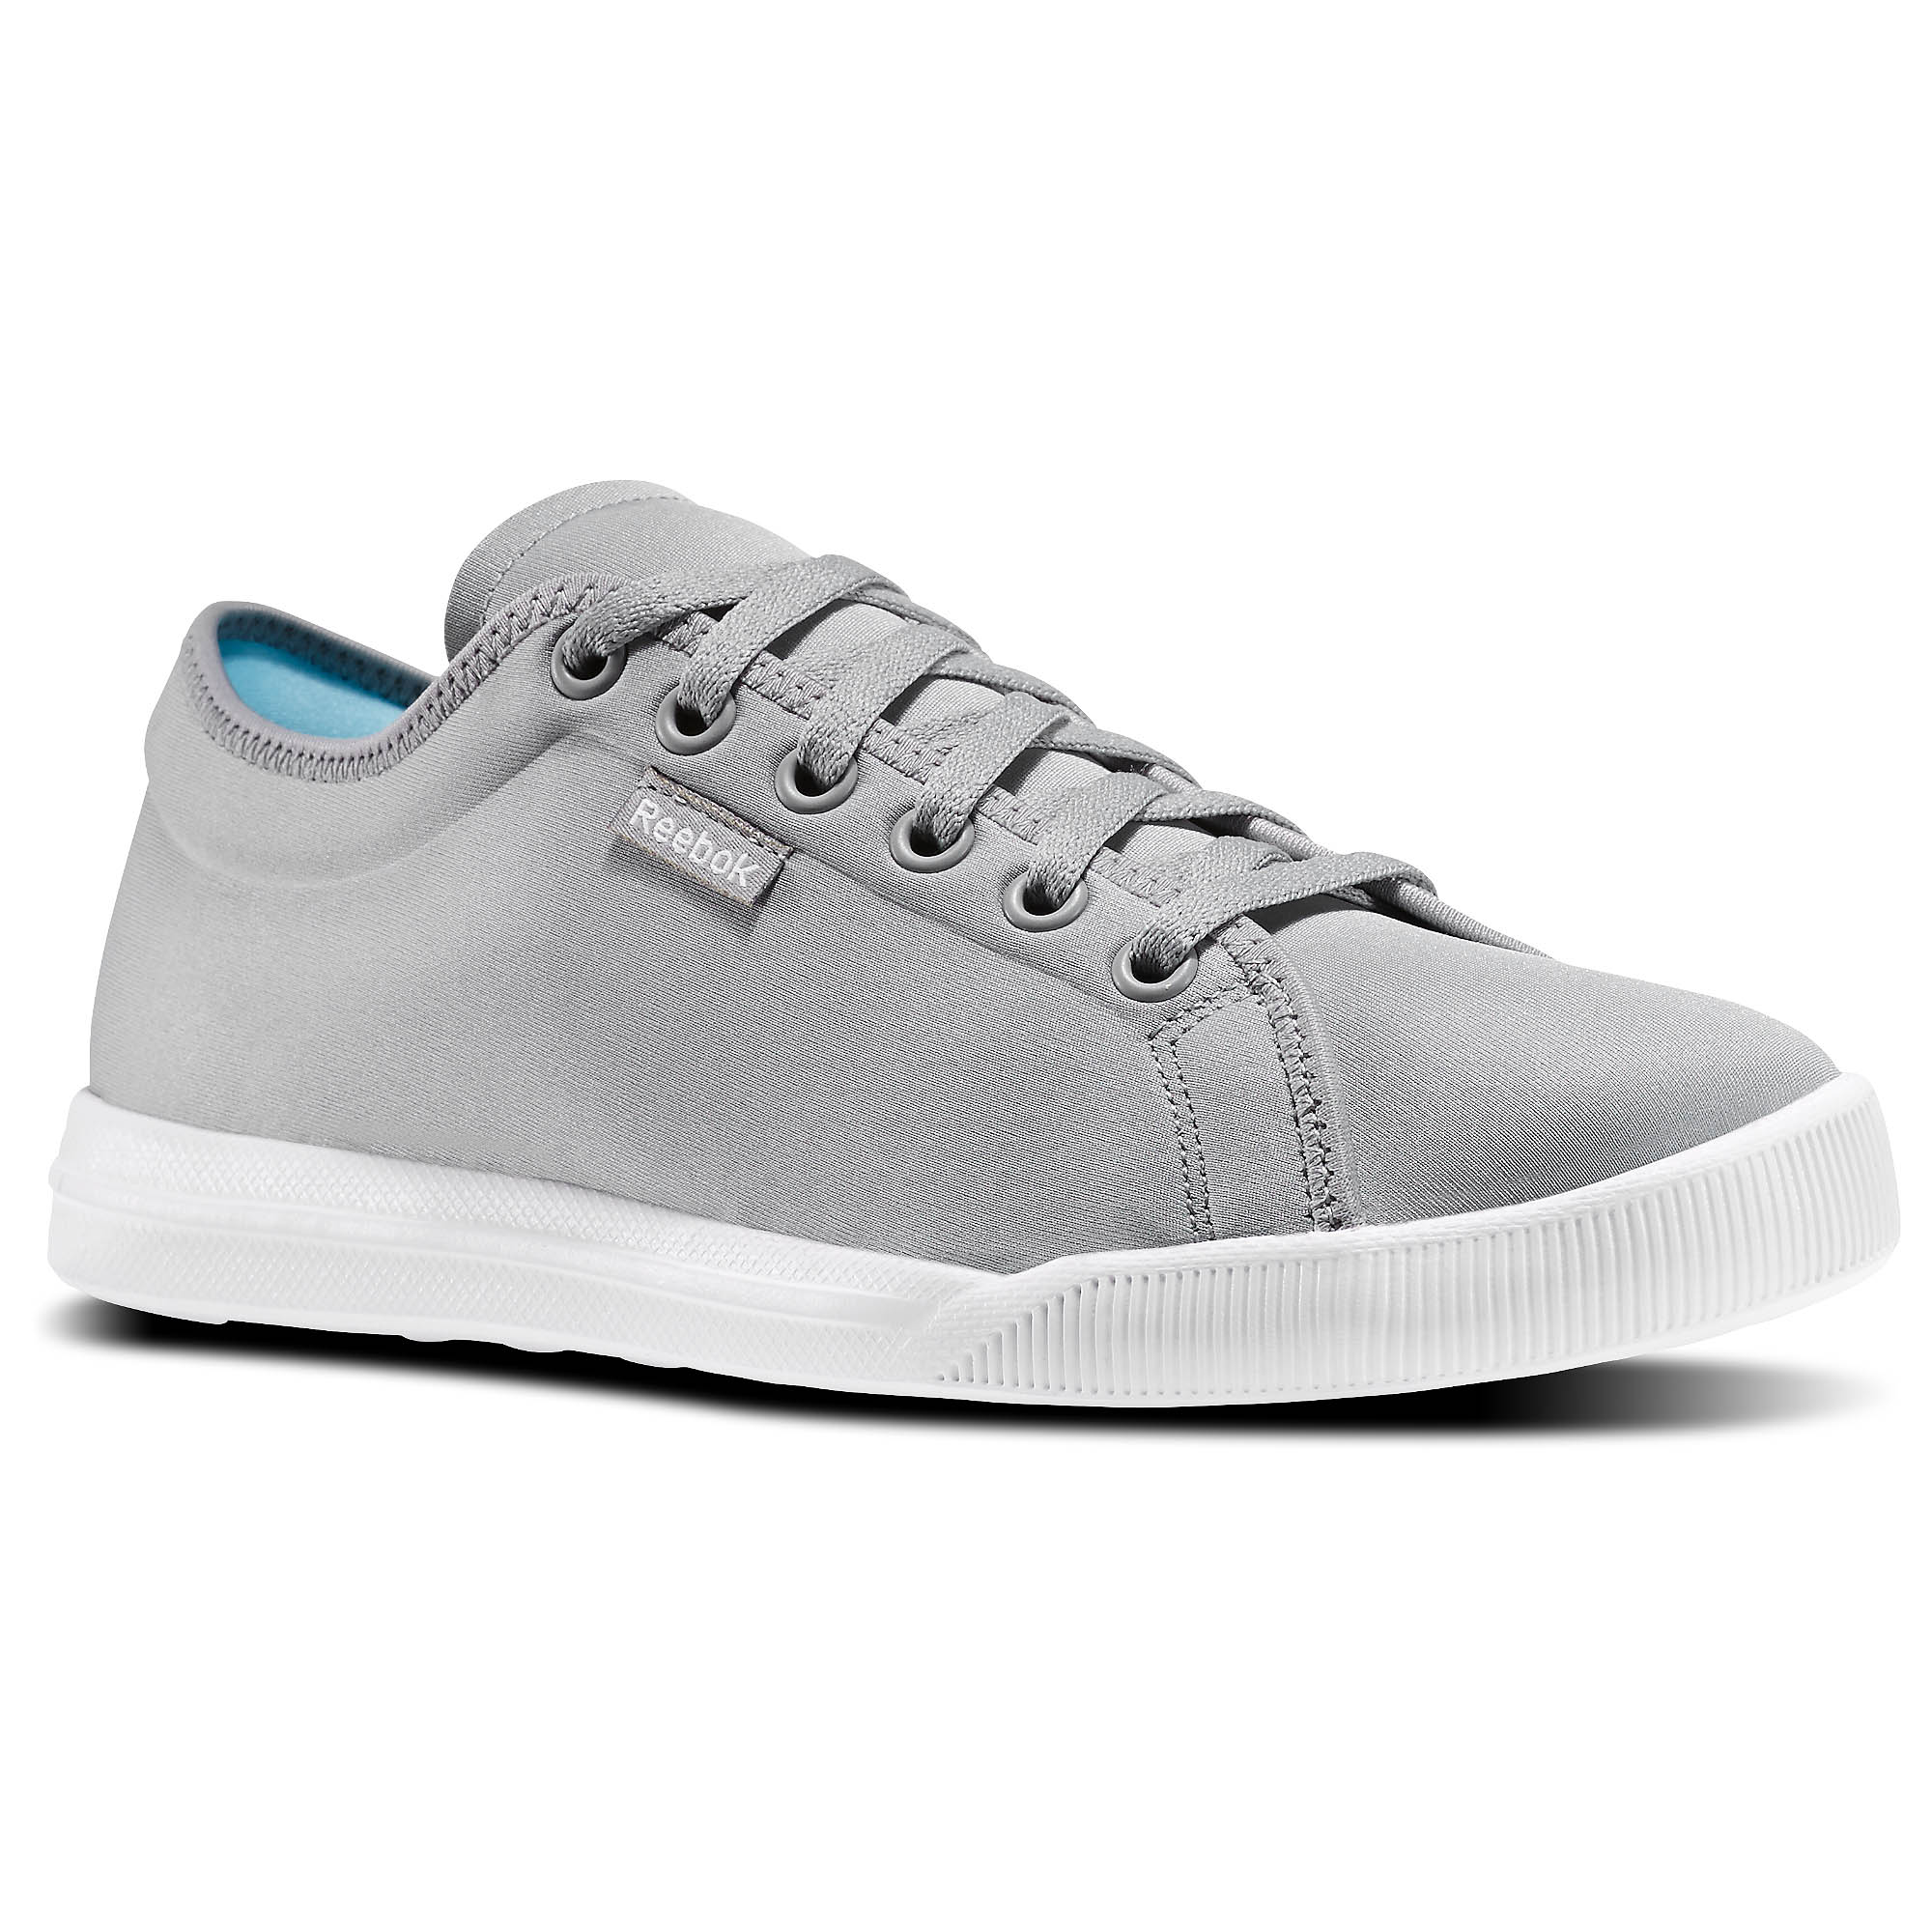 bc39cedbc74a Reebok Skyscape Forever Grey Womens Walking Shoes Trainers V61607